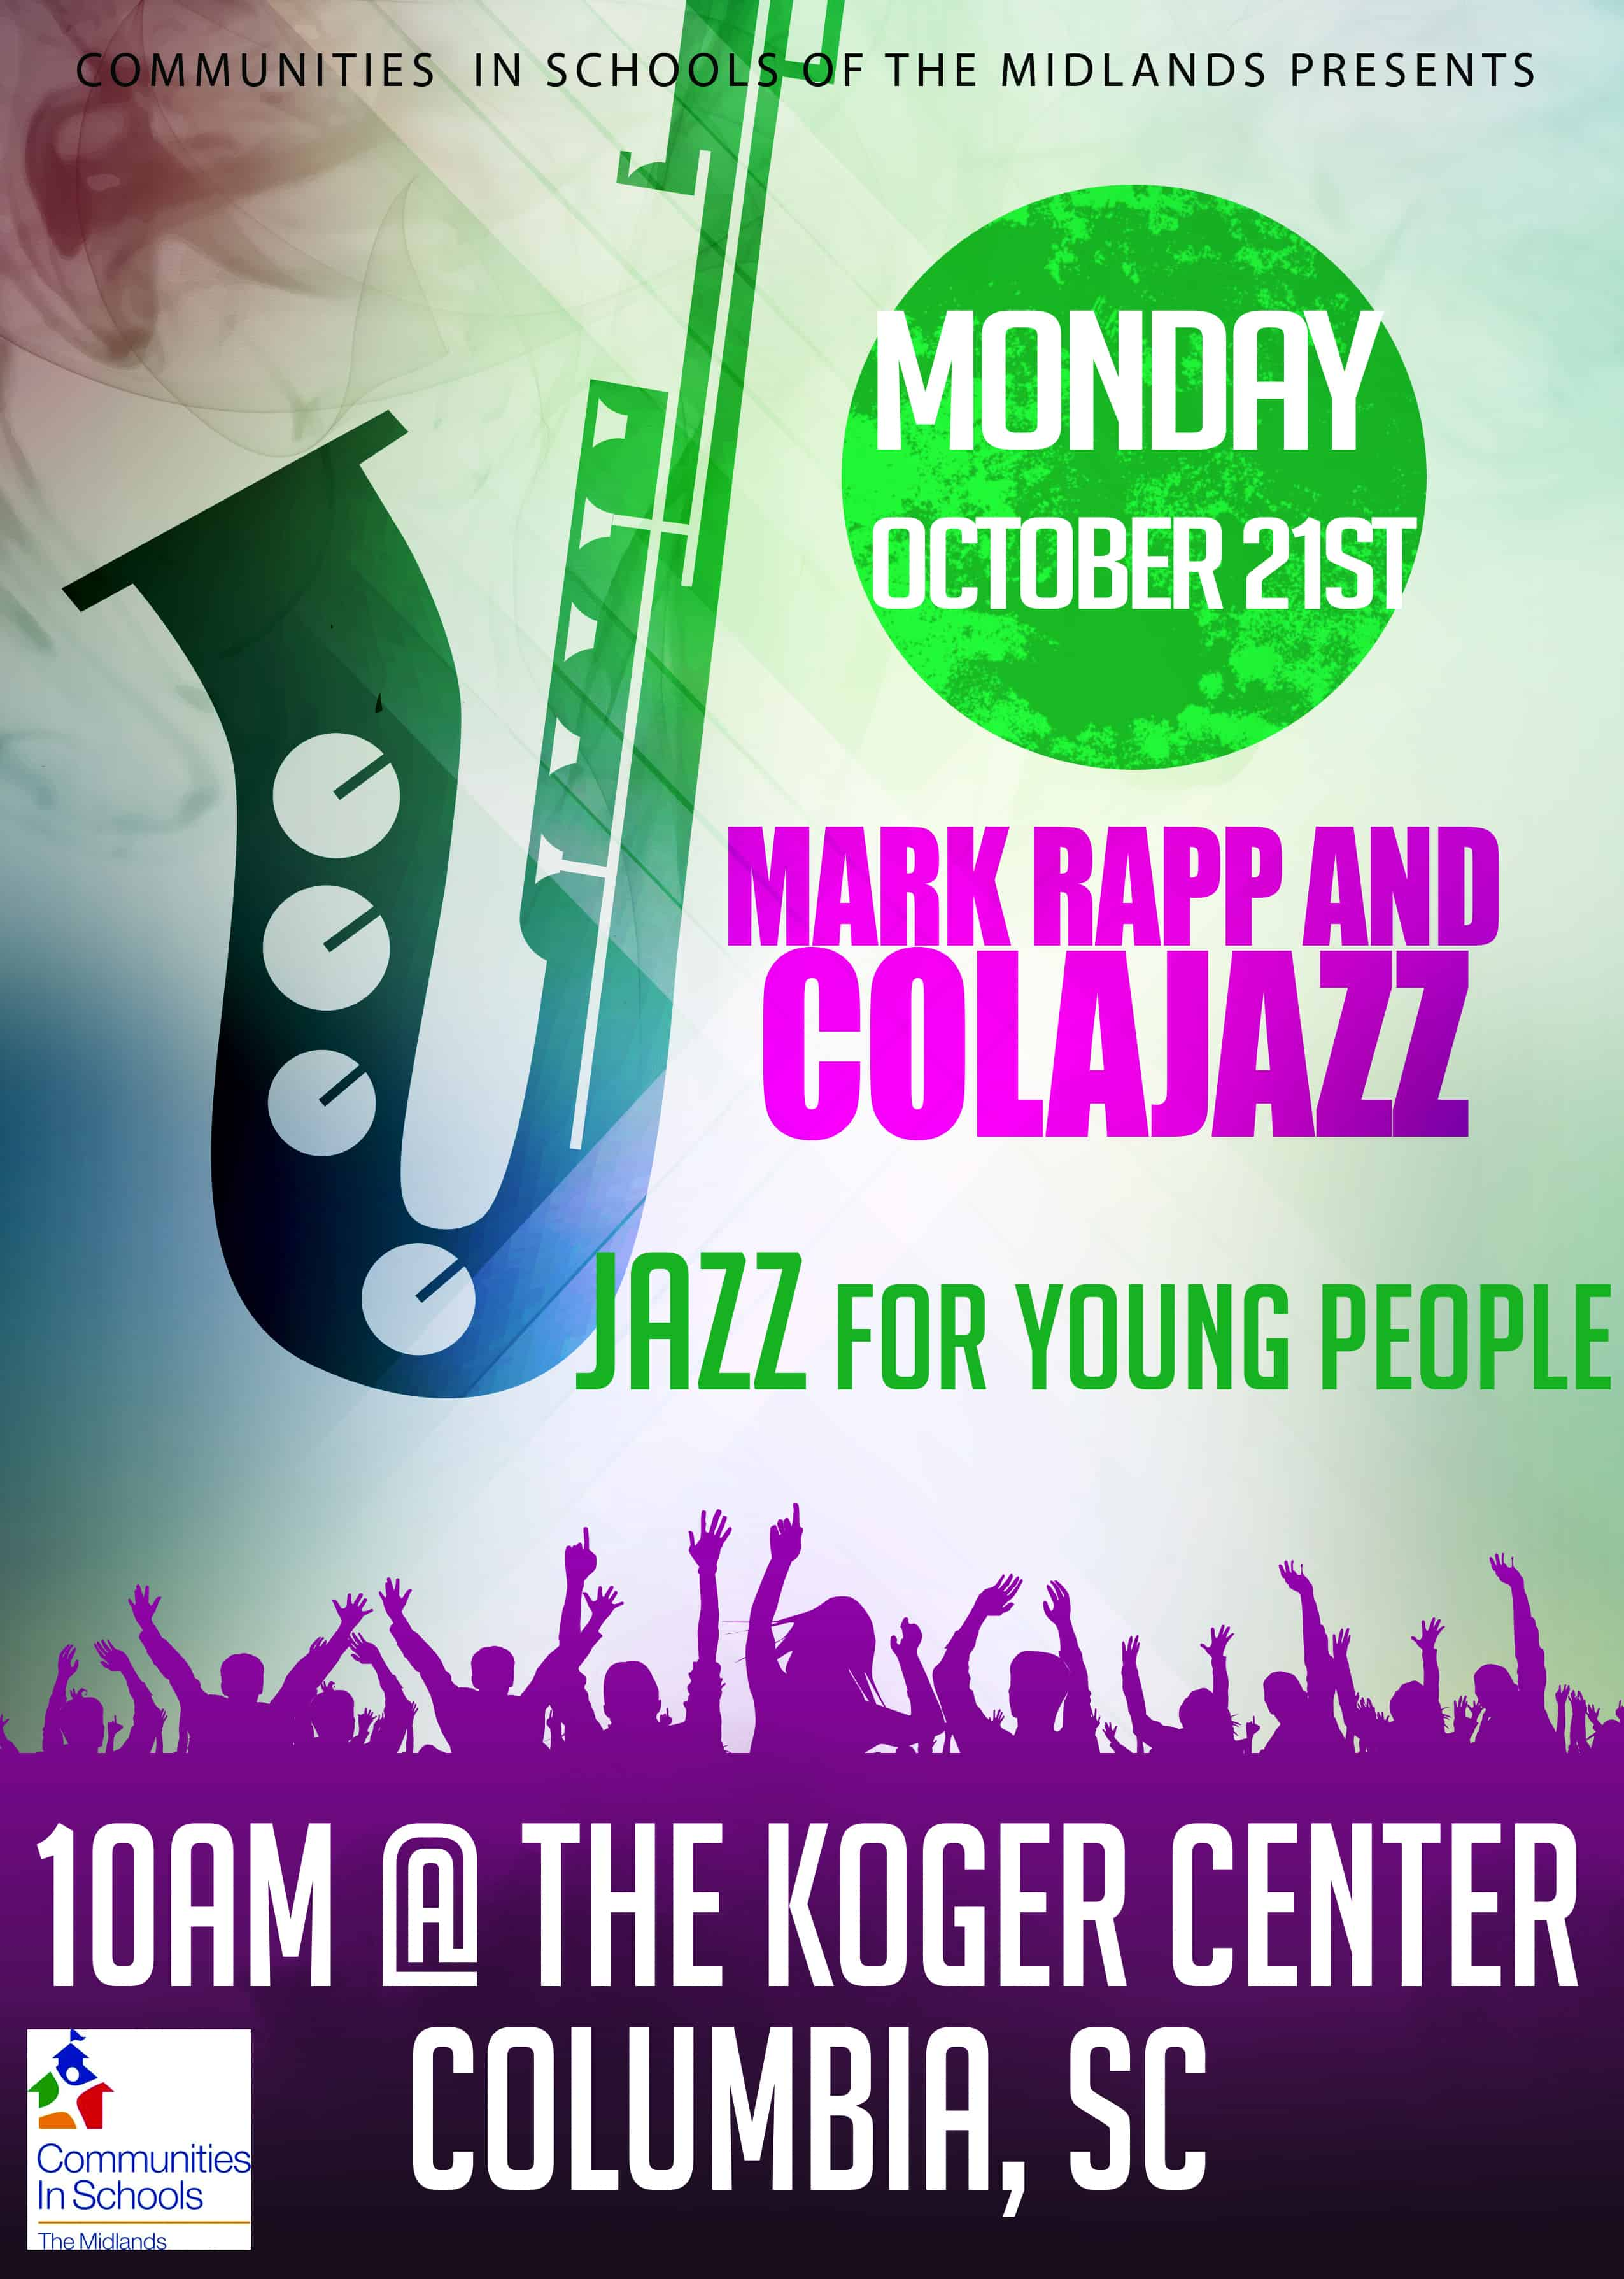 ColaJazz Koger Center Jazz for Young People